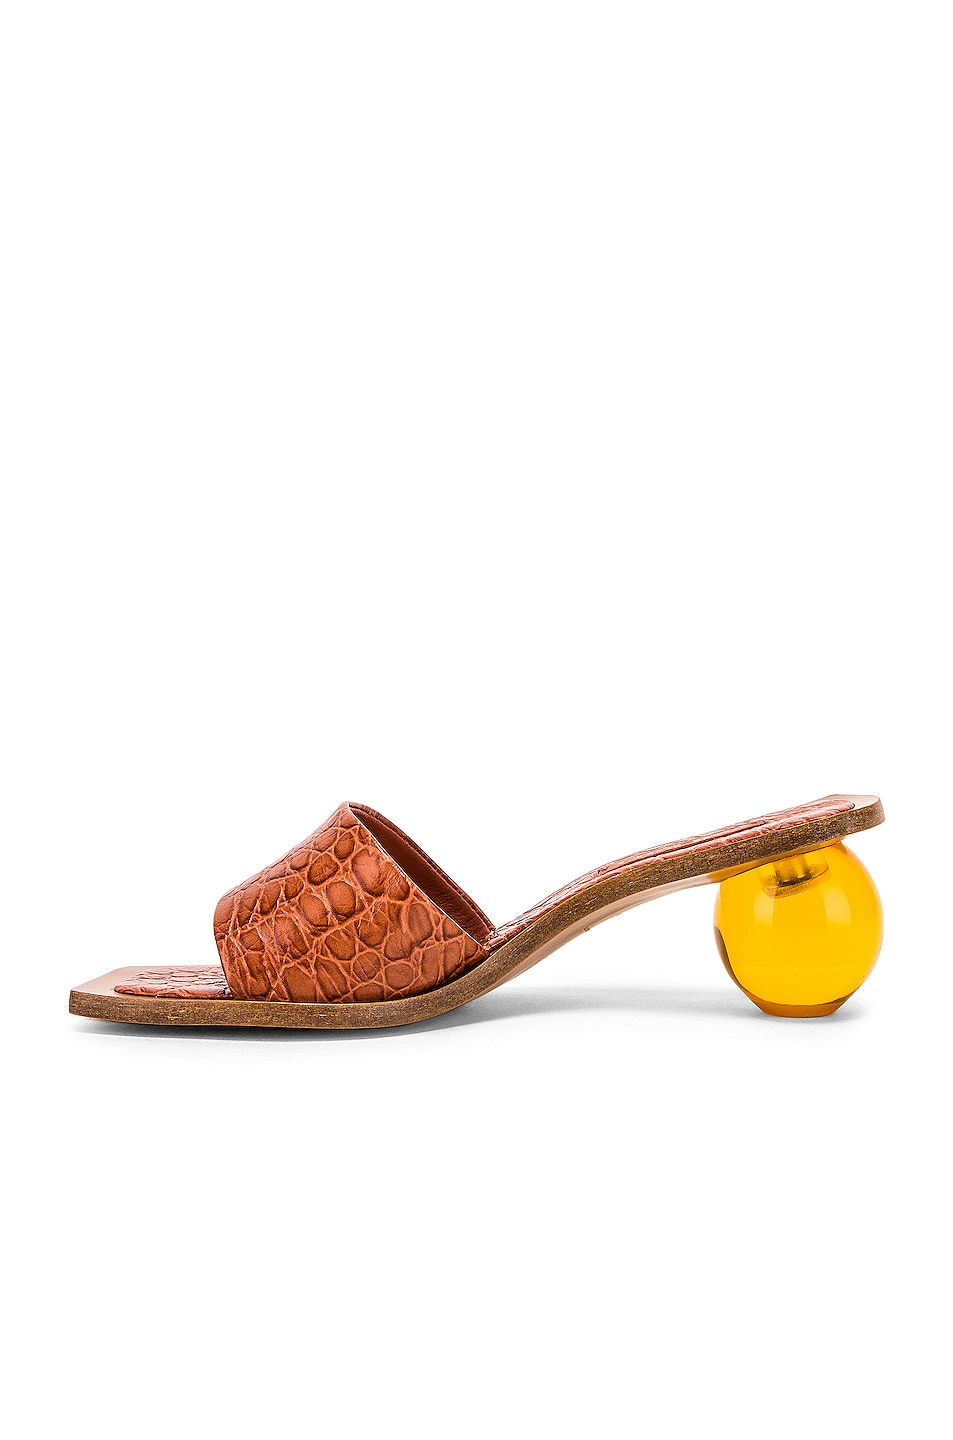 Image 5 of Cult Gaia Tao Sandal in Spice